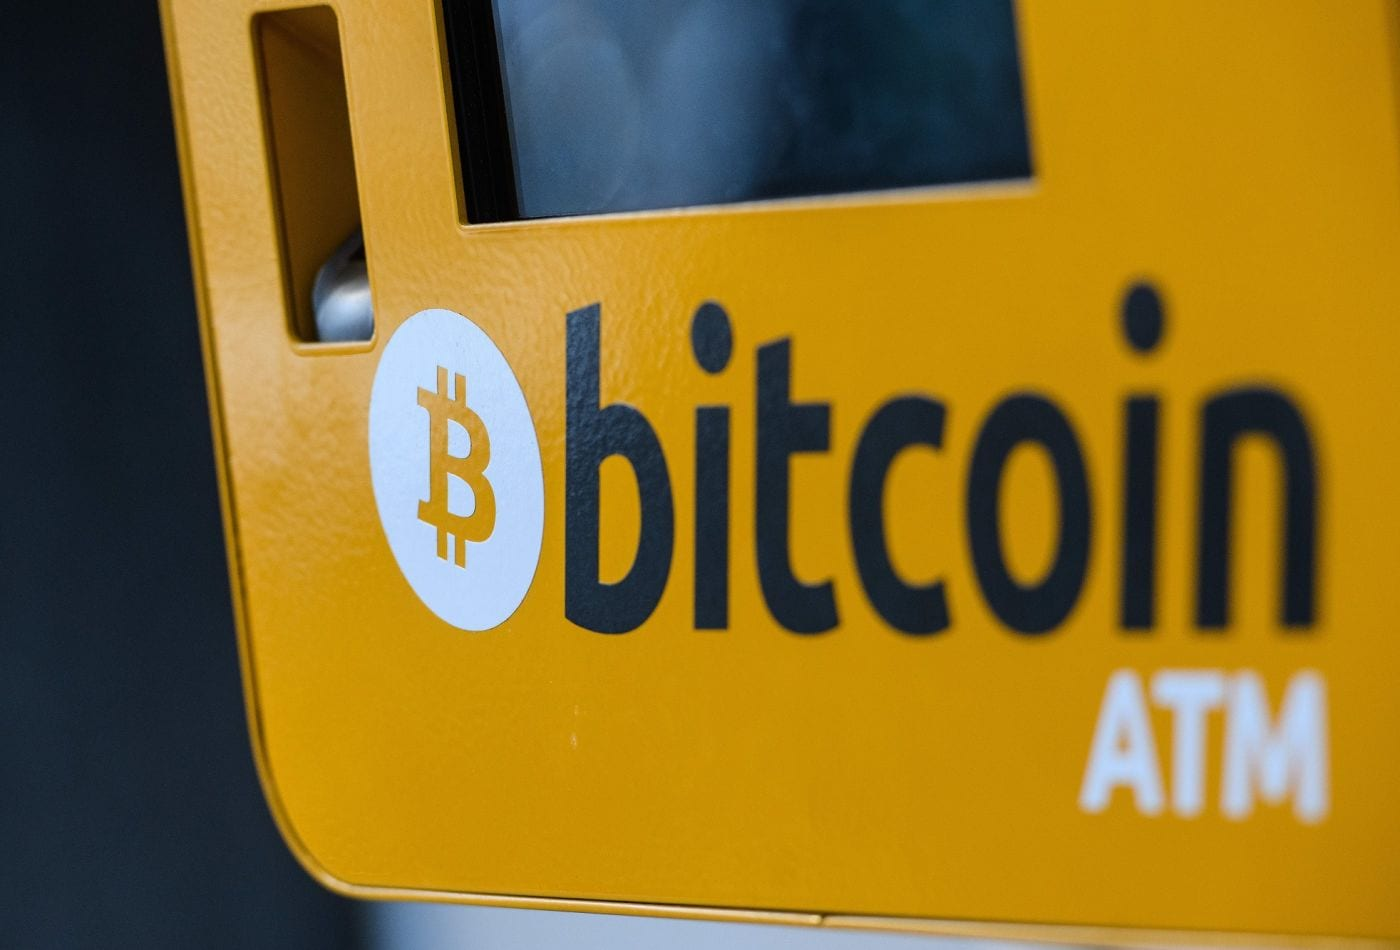 105240659 BitcoinATM GettyImages 894537922 - Crypto Mass Adoption: 3 Million Traditional ATMs Will Become Bitcoin (BTC) ATMs